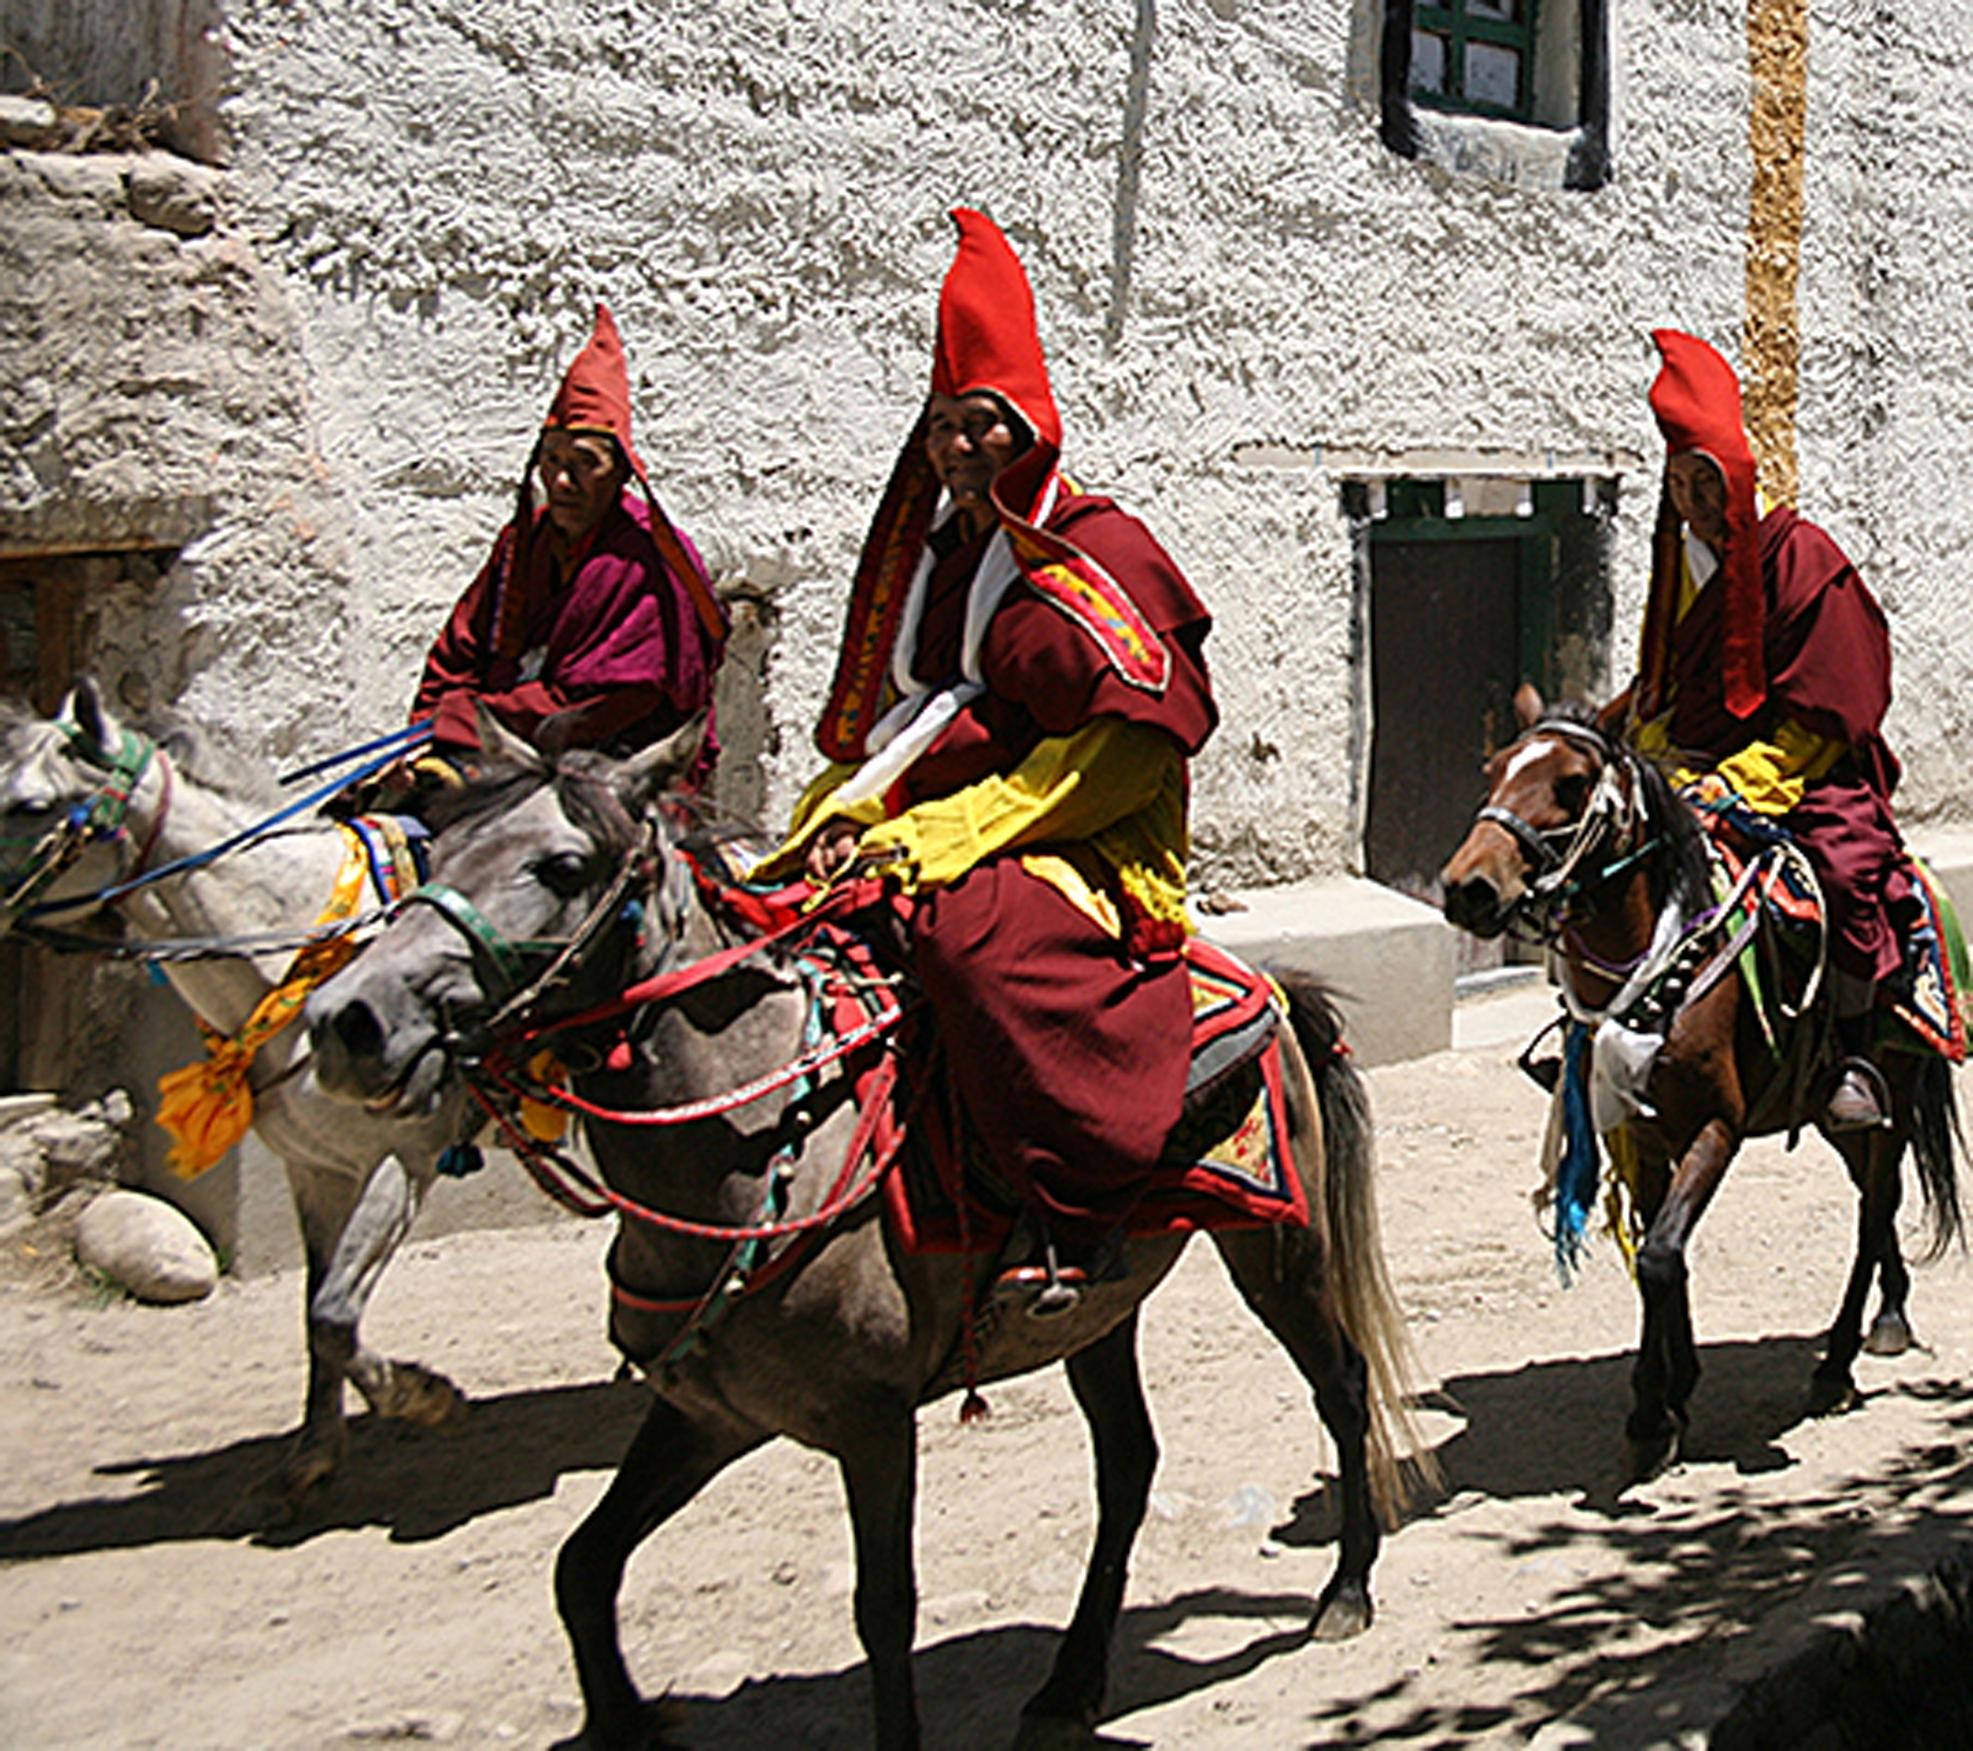 Riders make their way down the street in the medieval culture of Mustang in the Himalyas in the movie 'Talking To The Air,' one of two movies to be shown Sunday at a fundraising event for local nonprofit Riding Beyond. [Courtesy image]